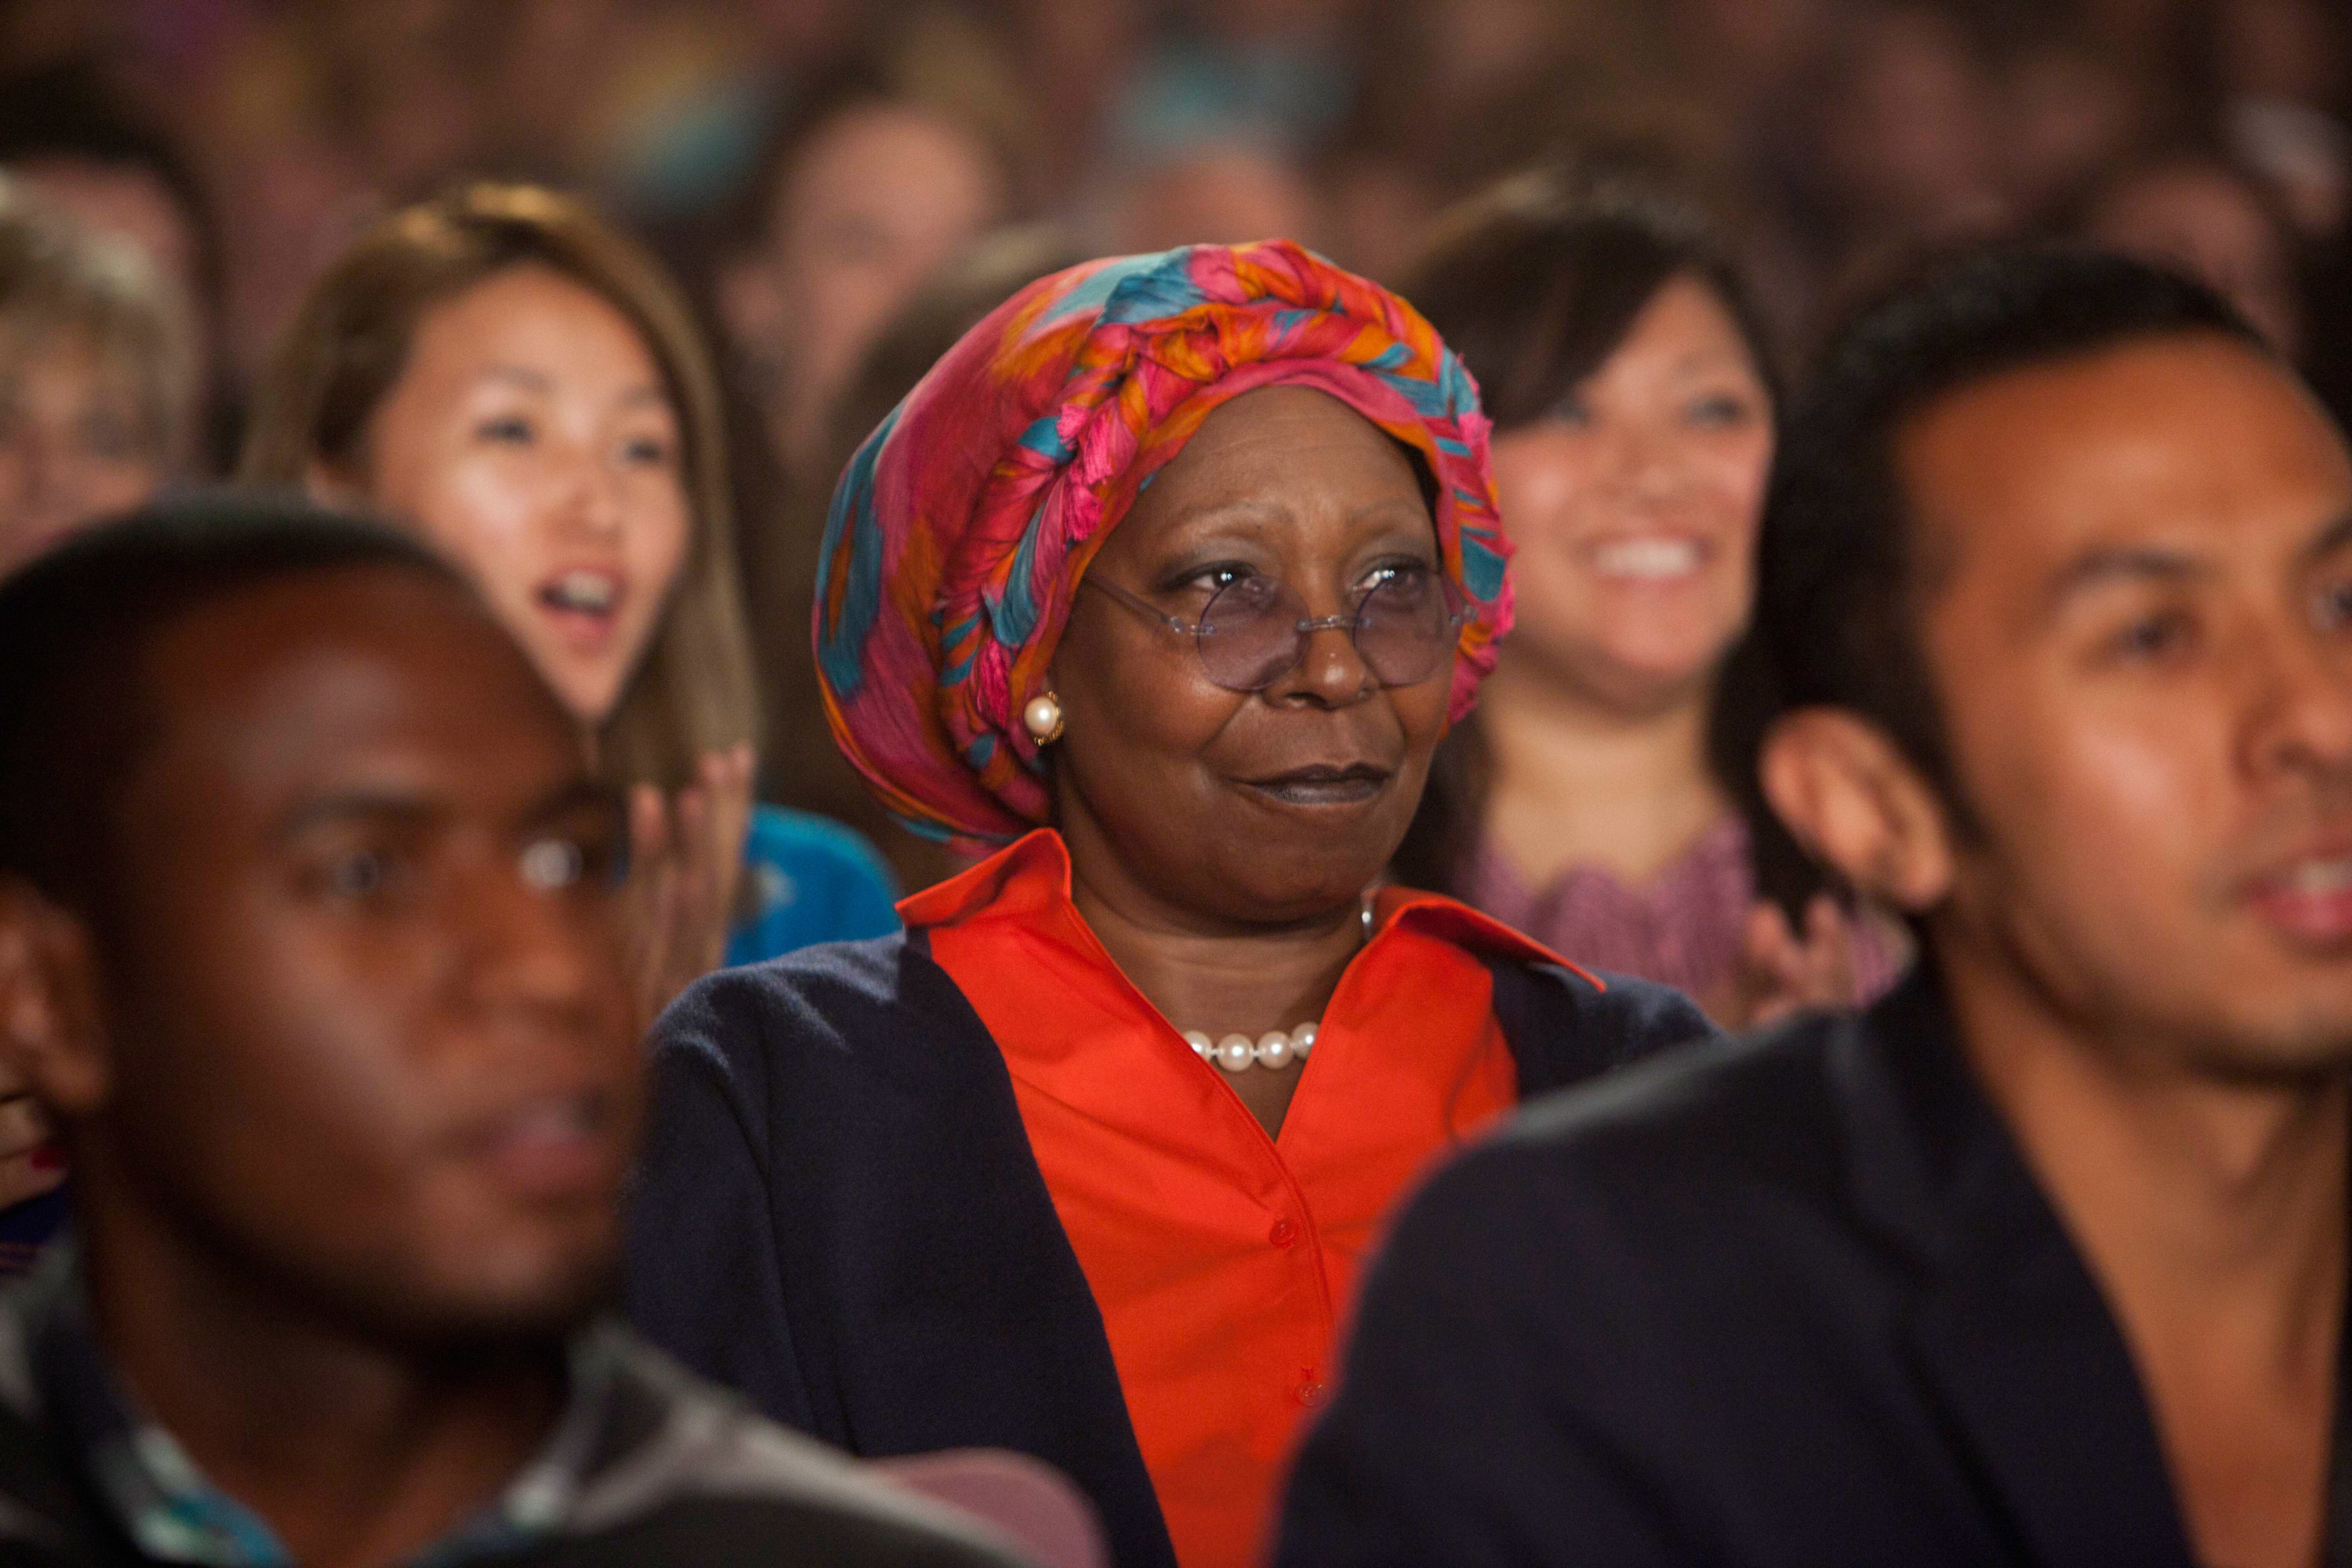 Whoopi sitting in the audience